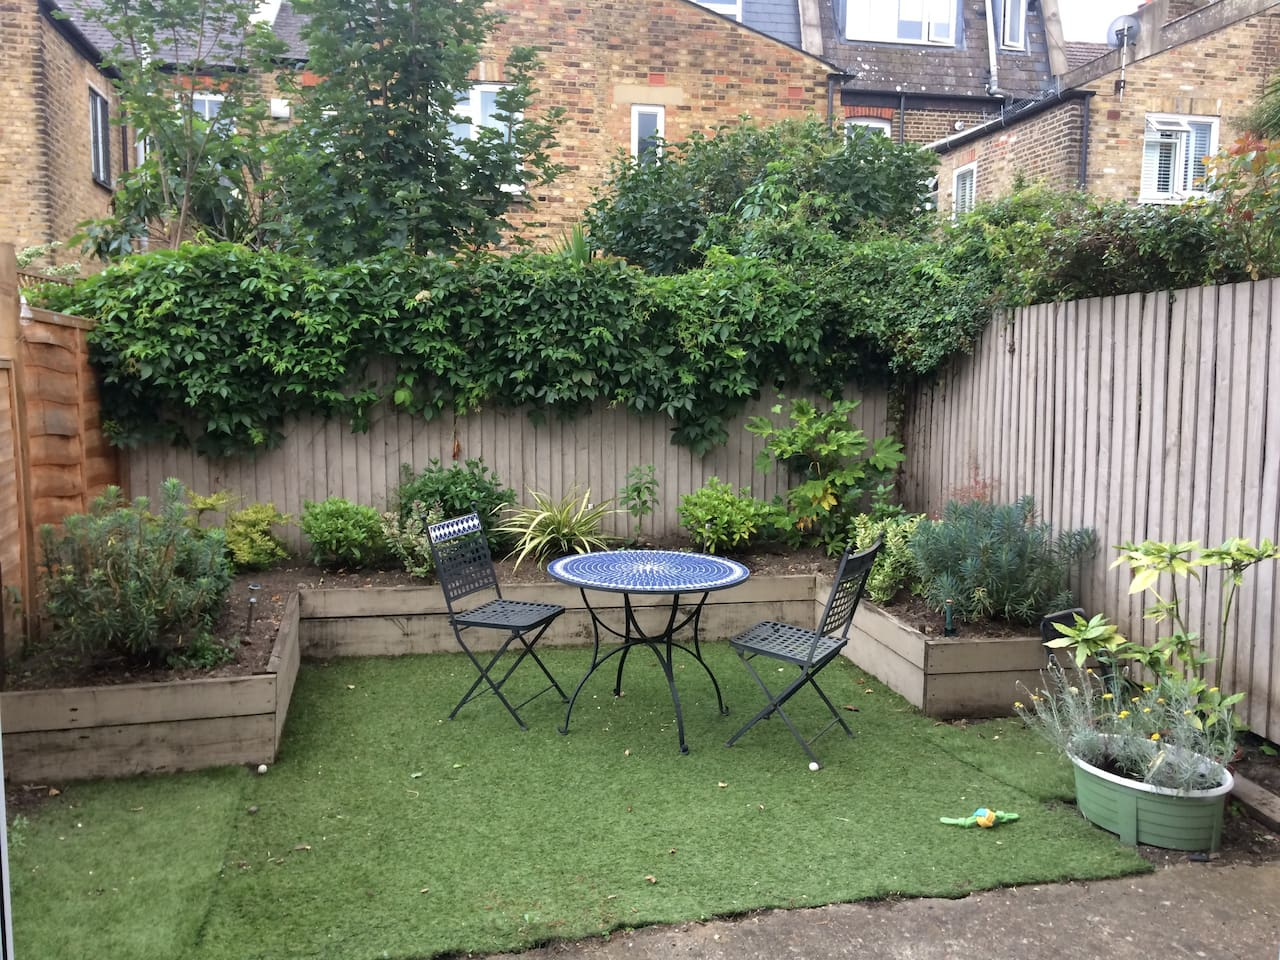 Shared garden space that is for the flat residents only